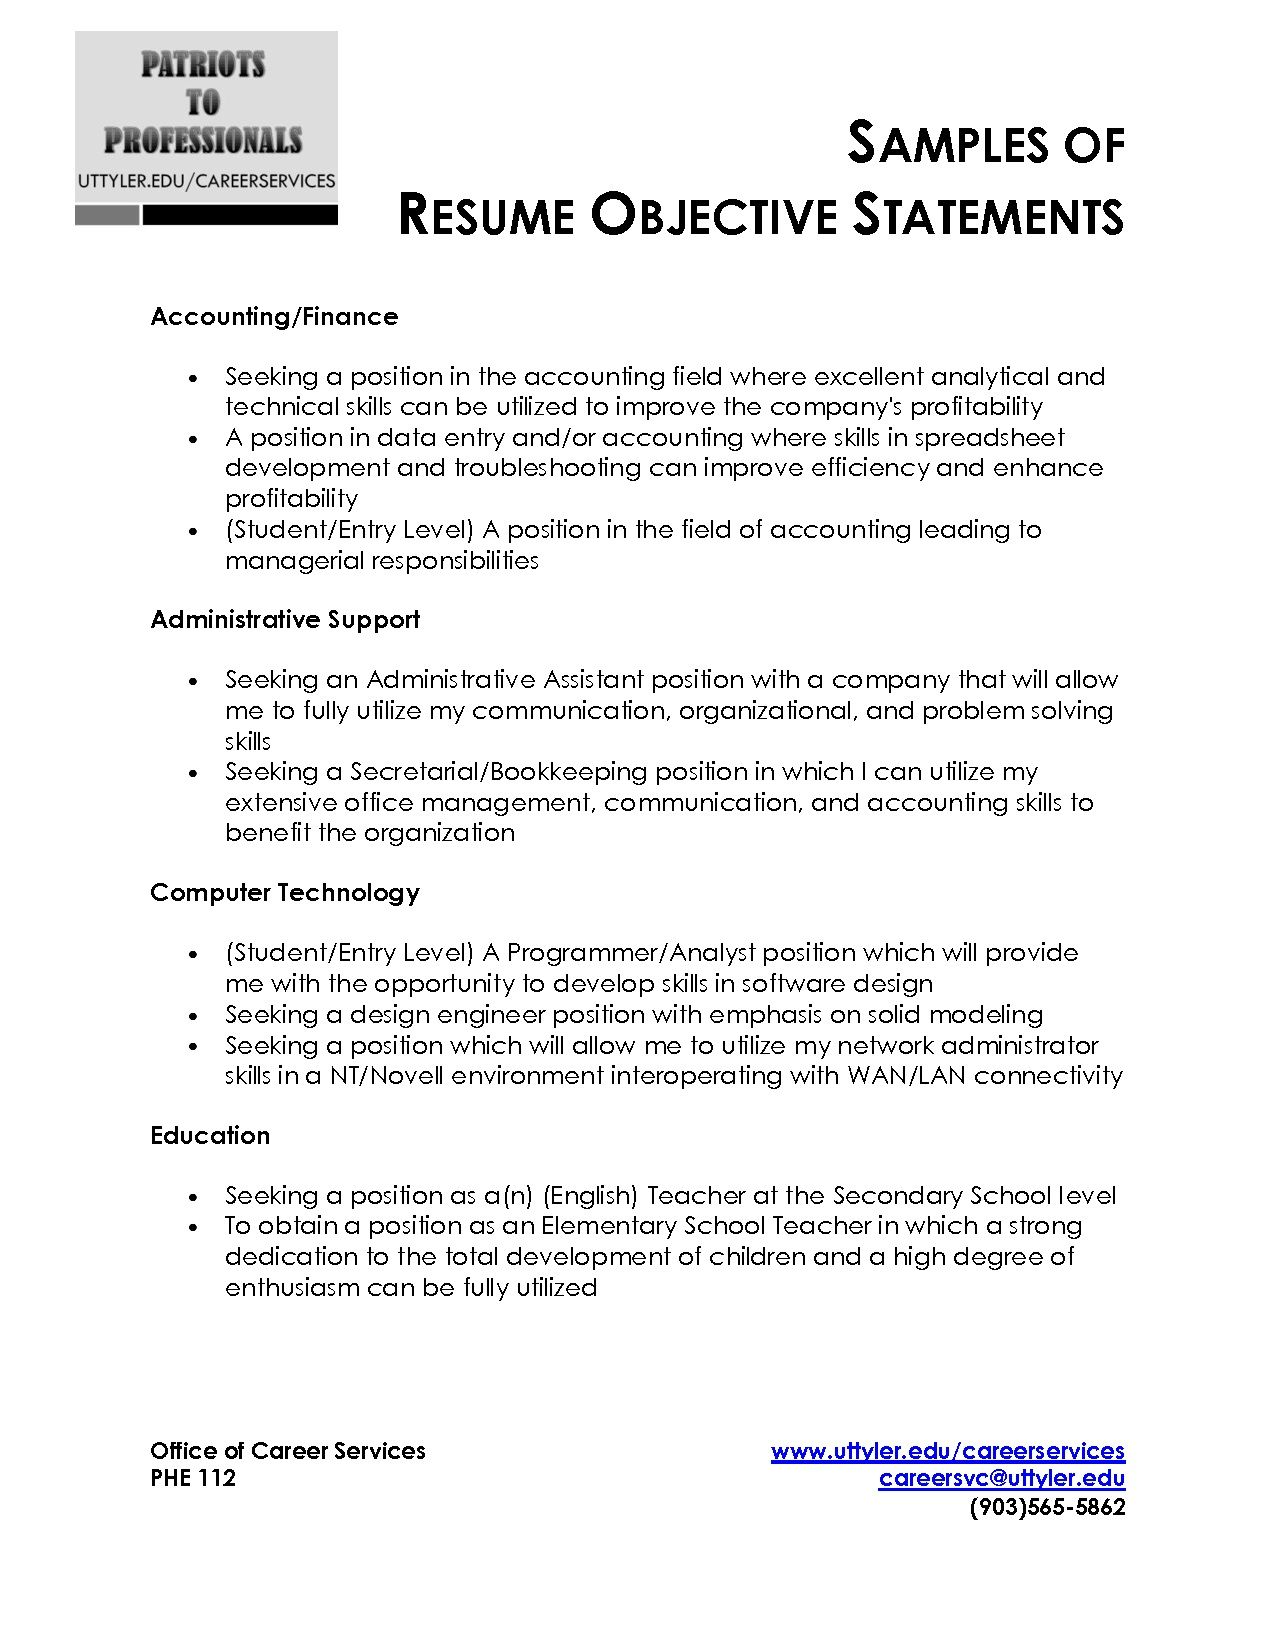 Sample Resume Objective Statement (adsbygoogle = window